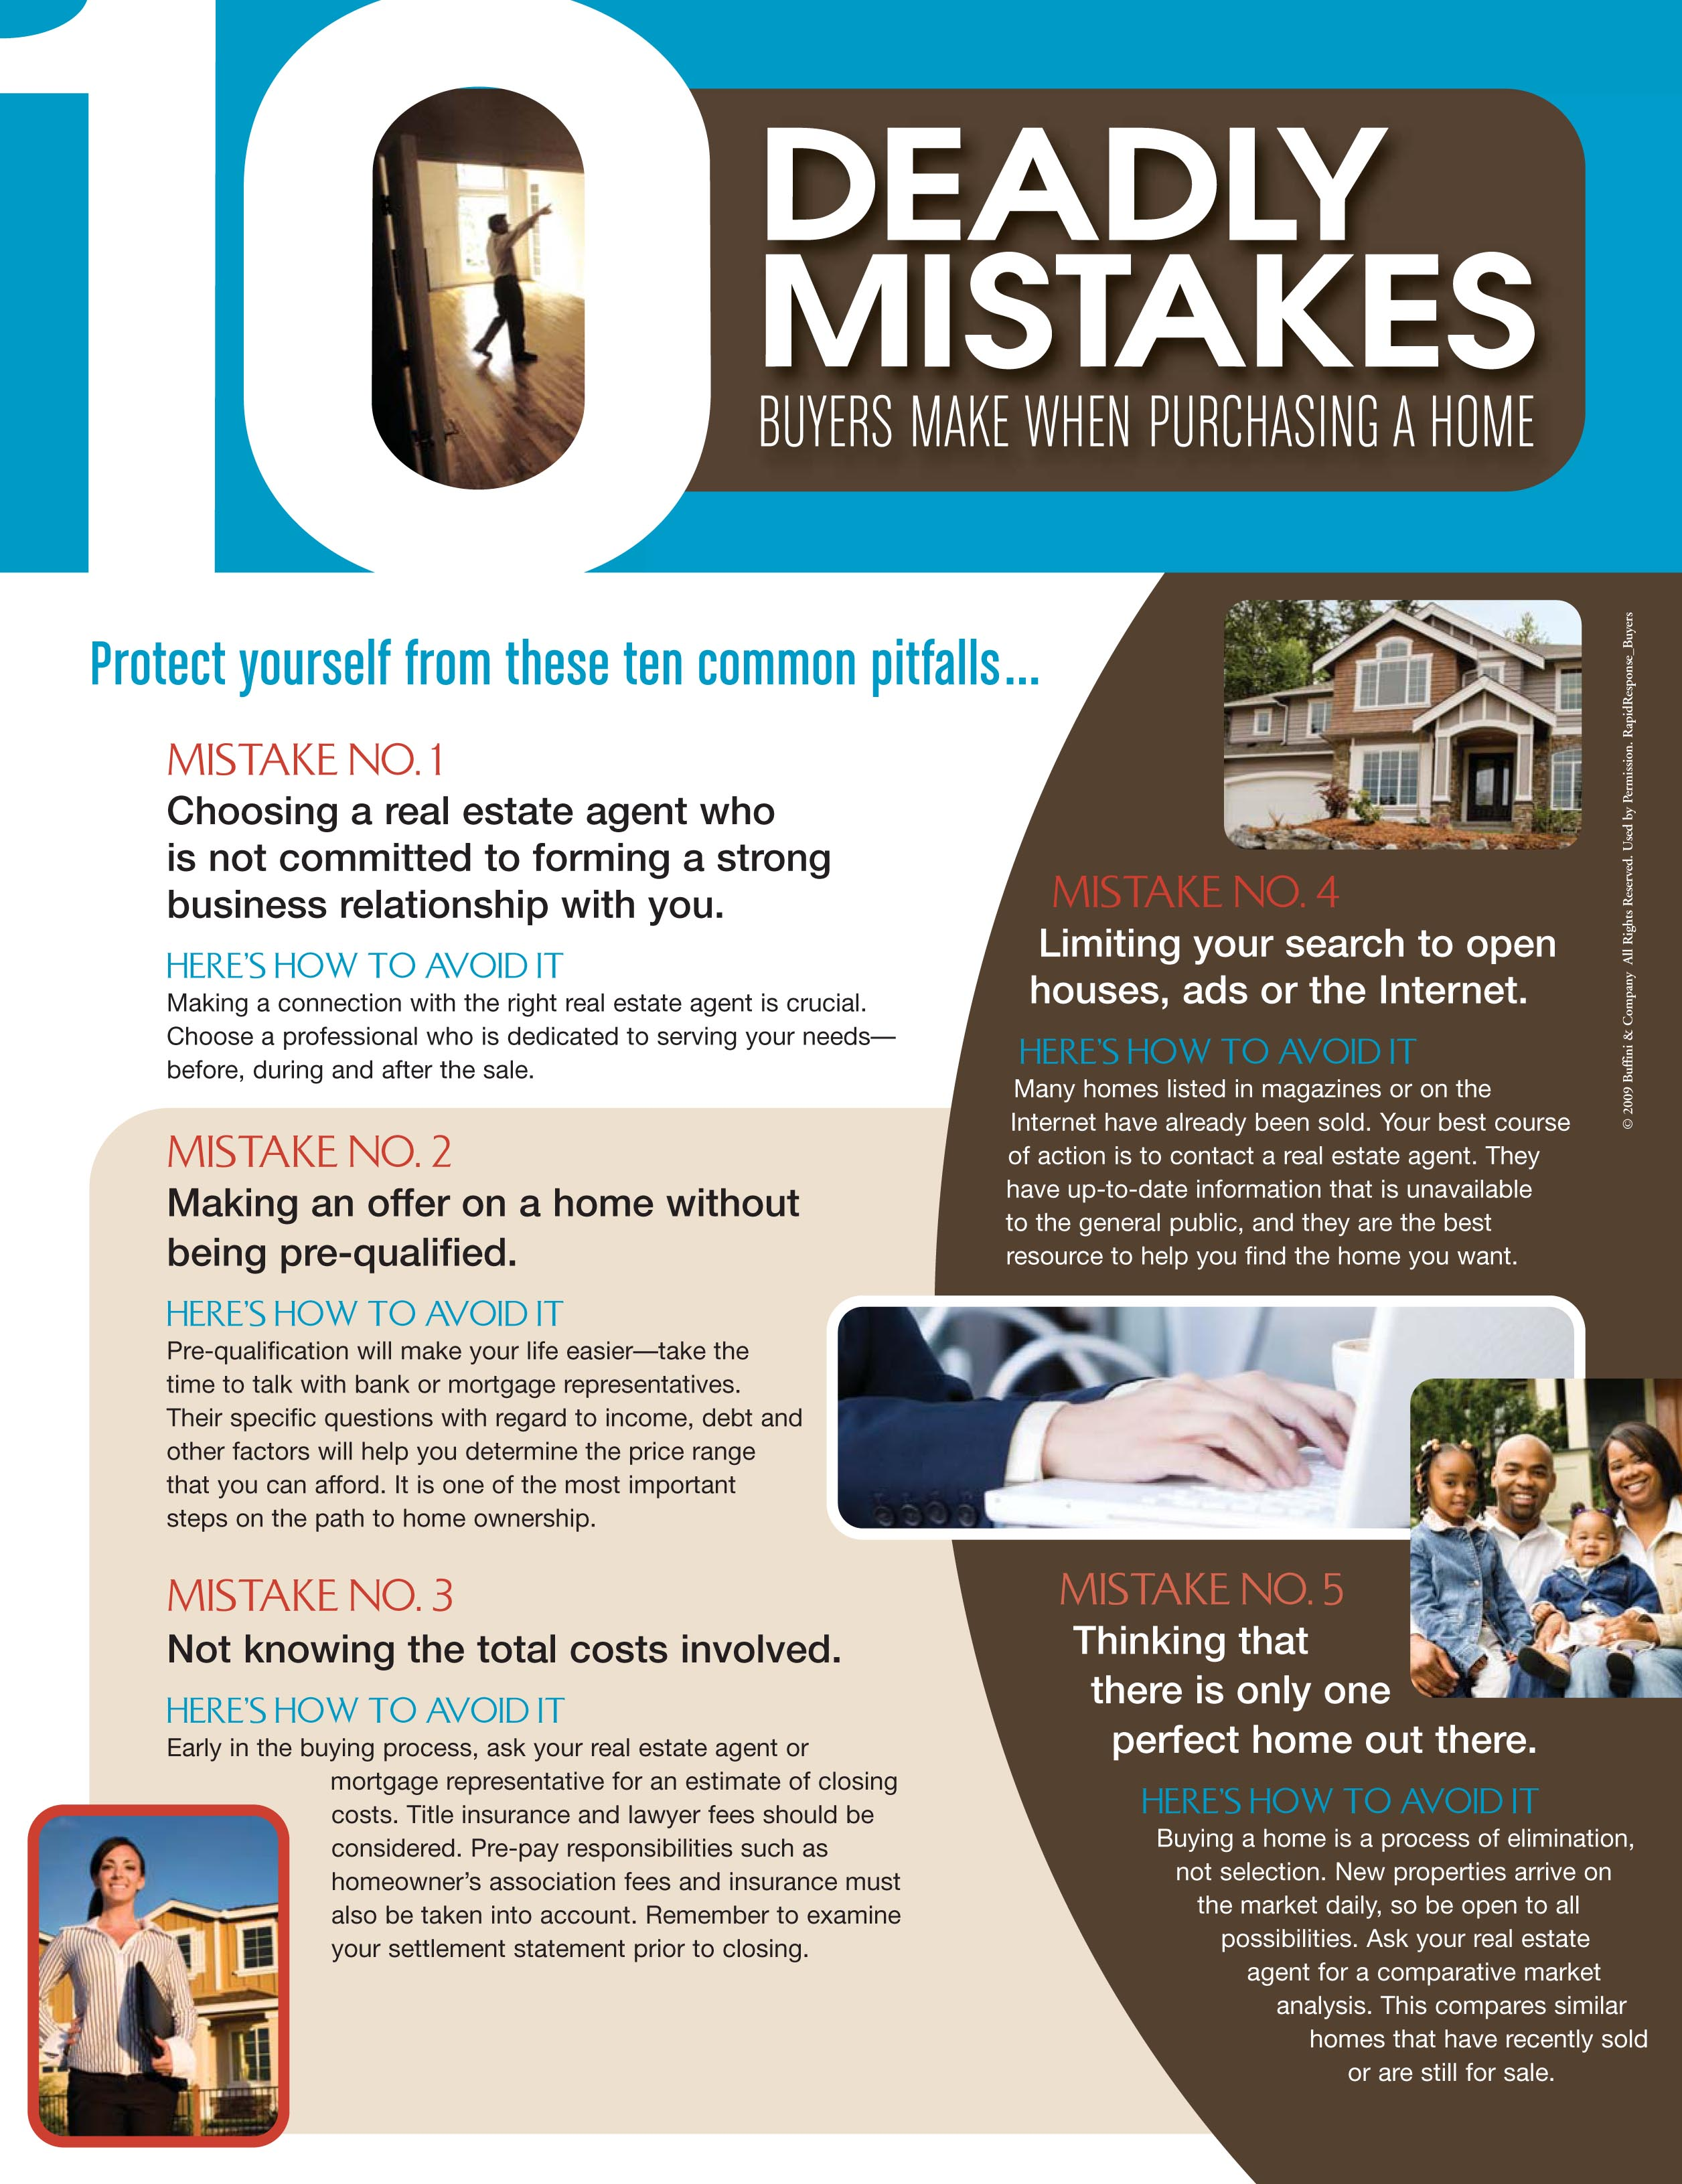 10 deadly mistakes dna homes Mortgage to buy land